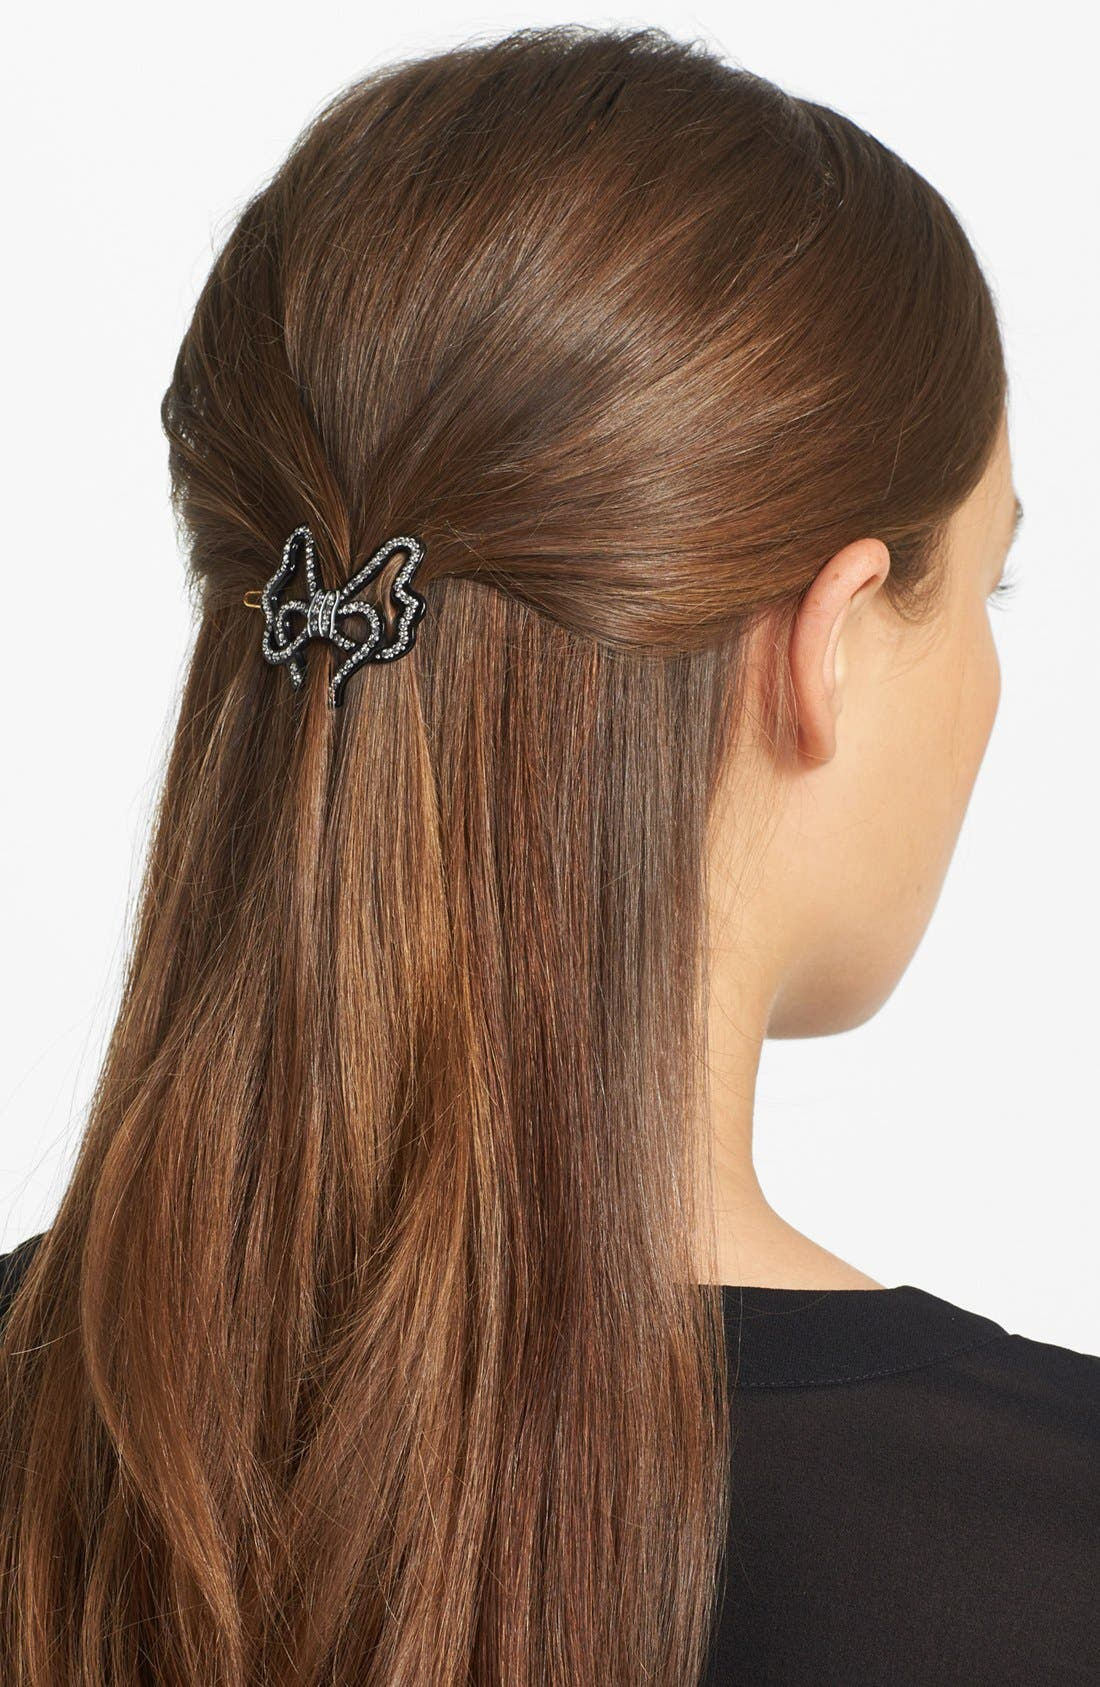 Main Image - France Luxe 'Dashing' Crystal Bow Hair Clip